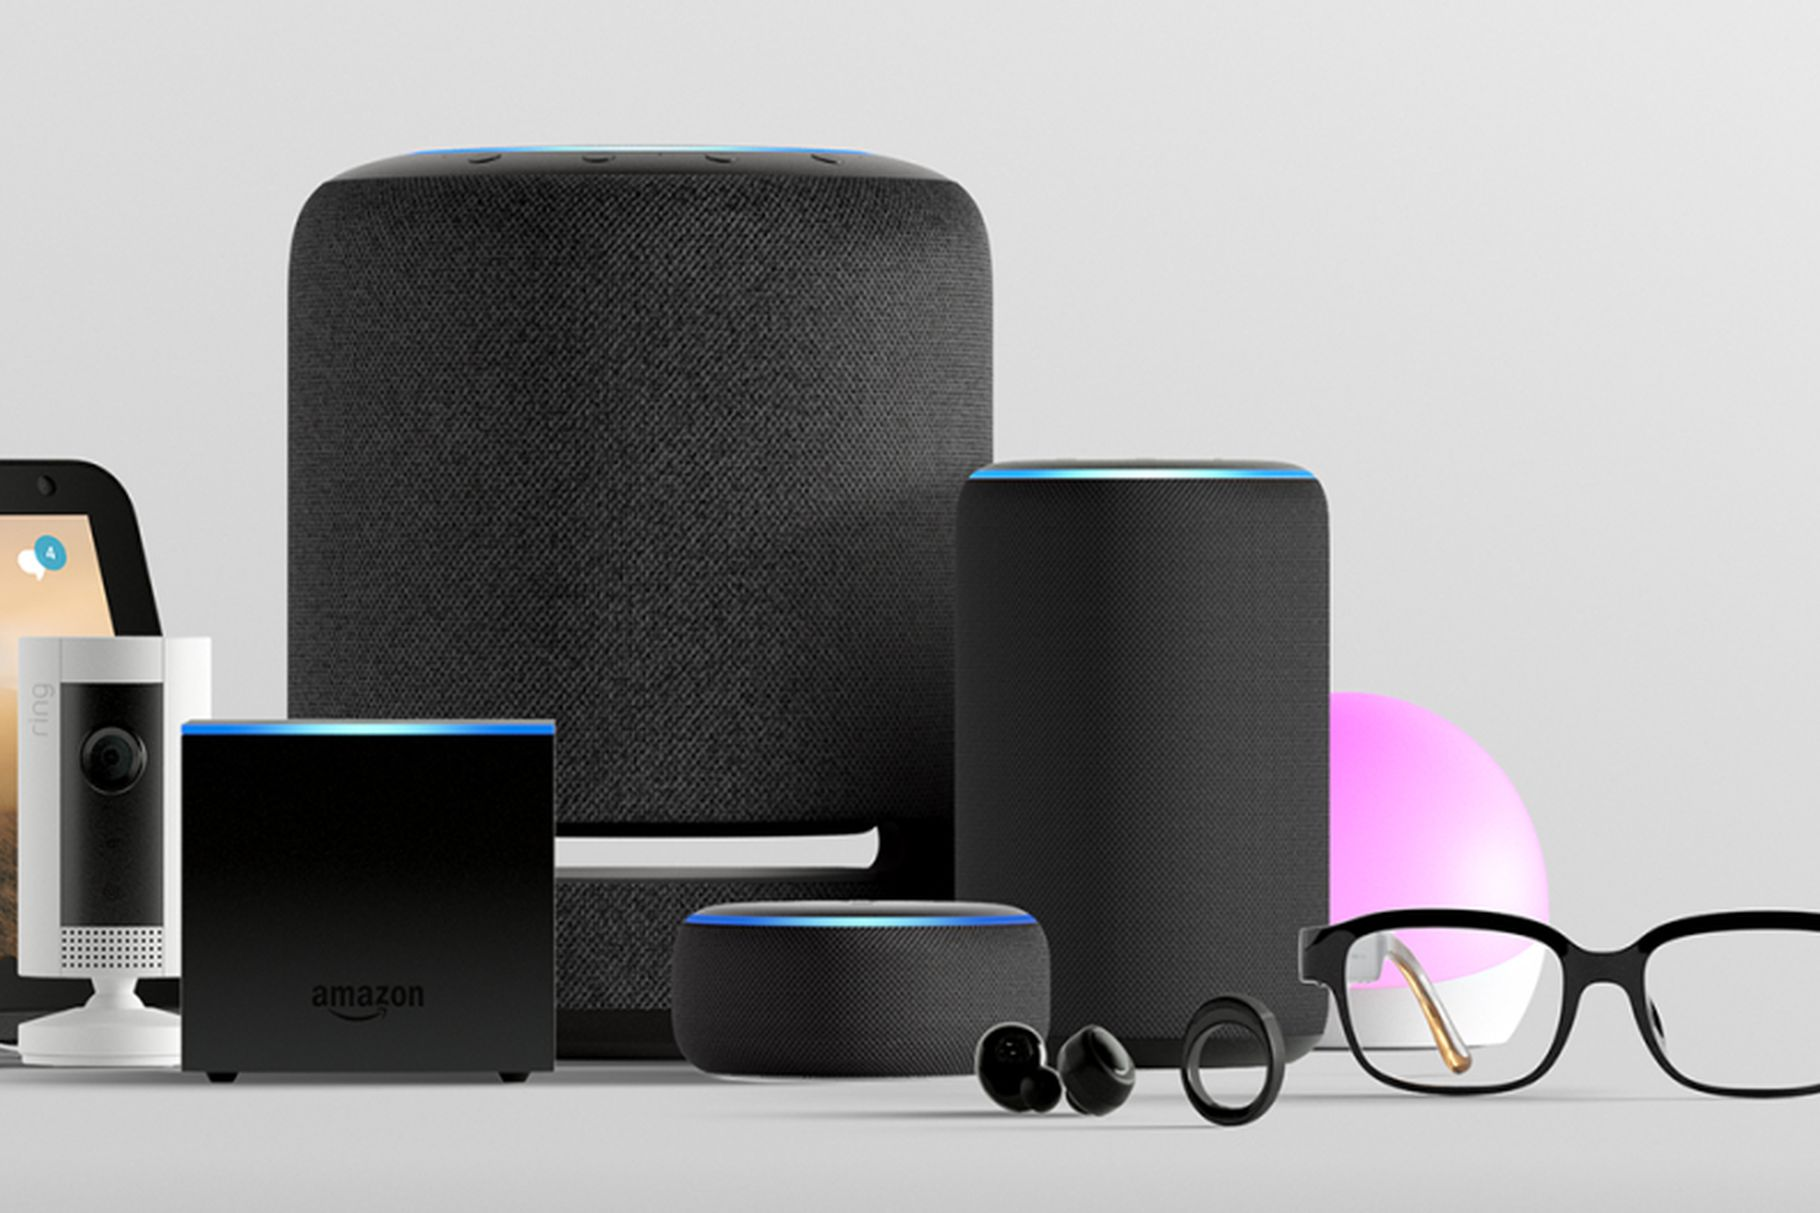 The biggest announcements from Amazon's fall 2019 hardware event